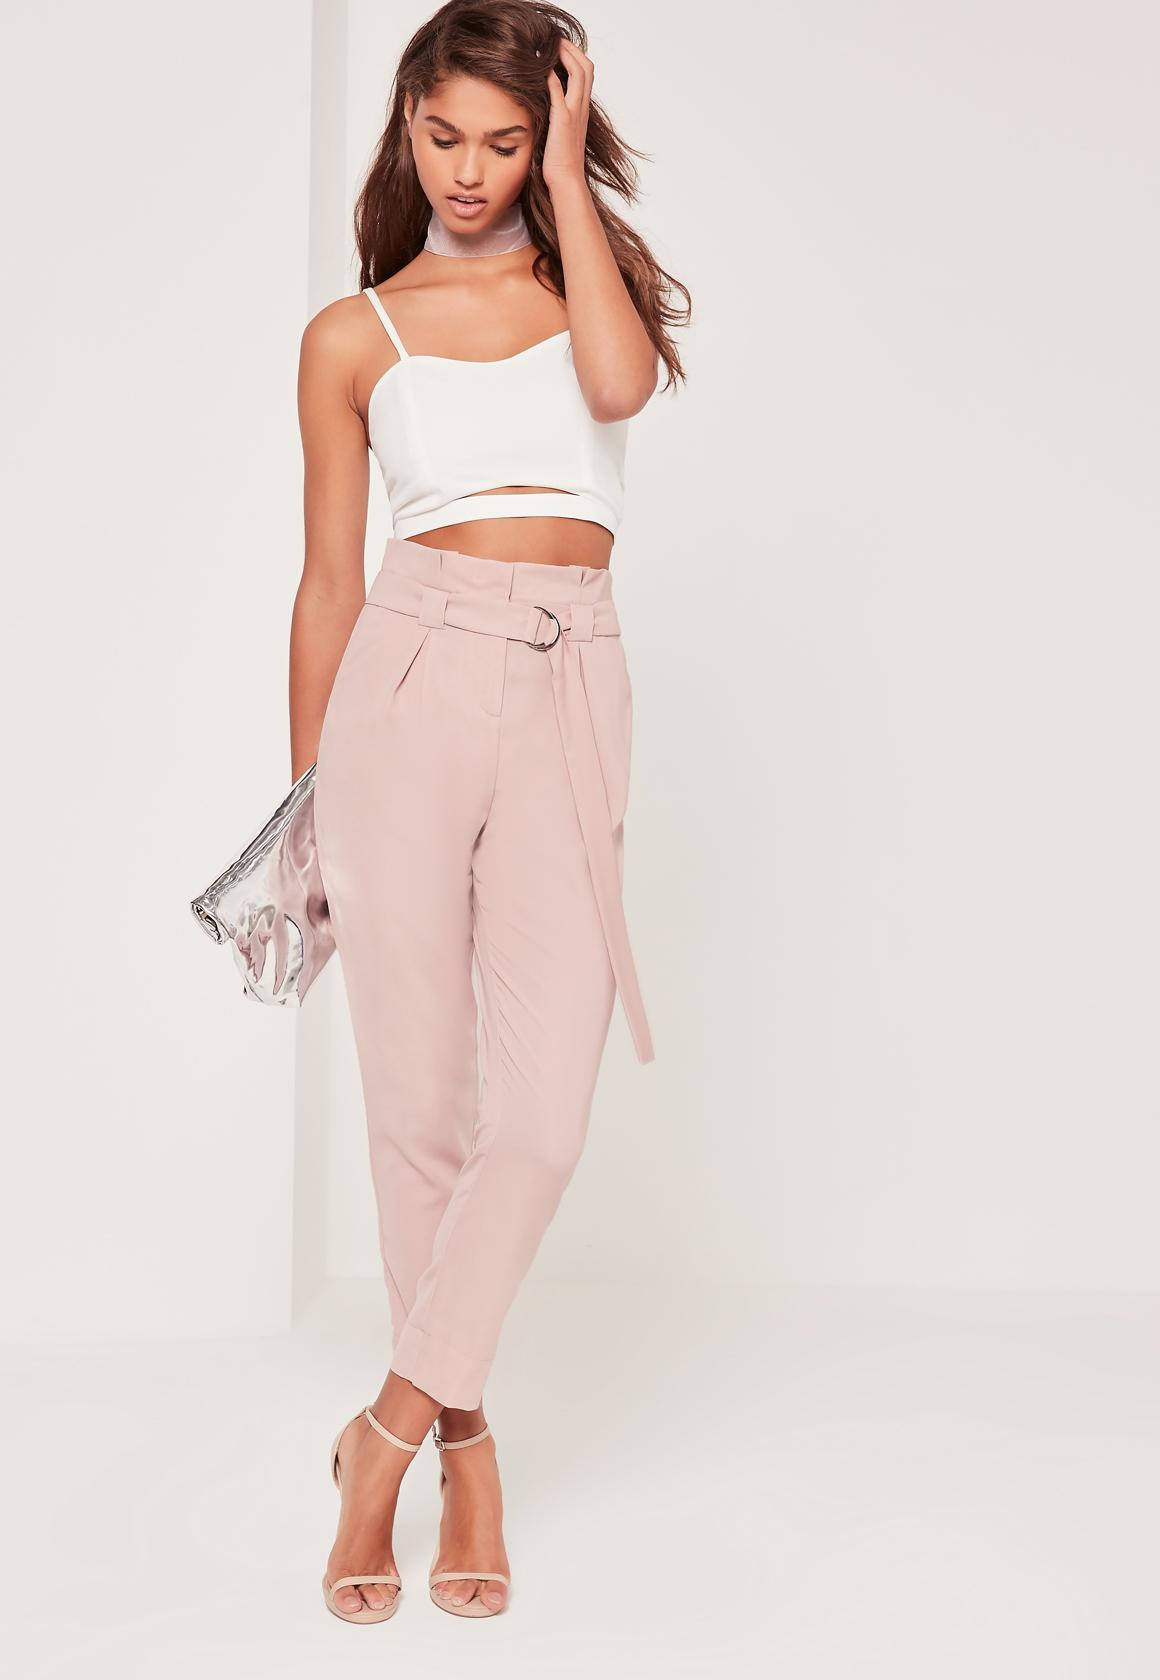 Paper bag trousers - Paperbag Waist Cigarette Trousers Pink